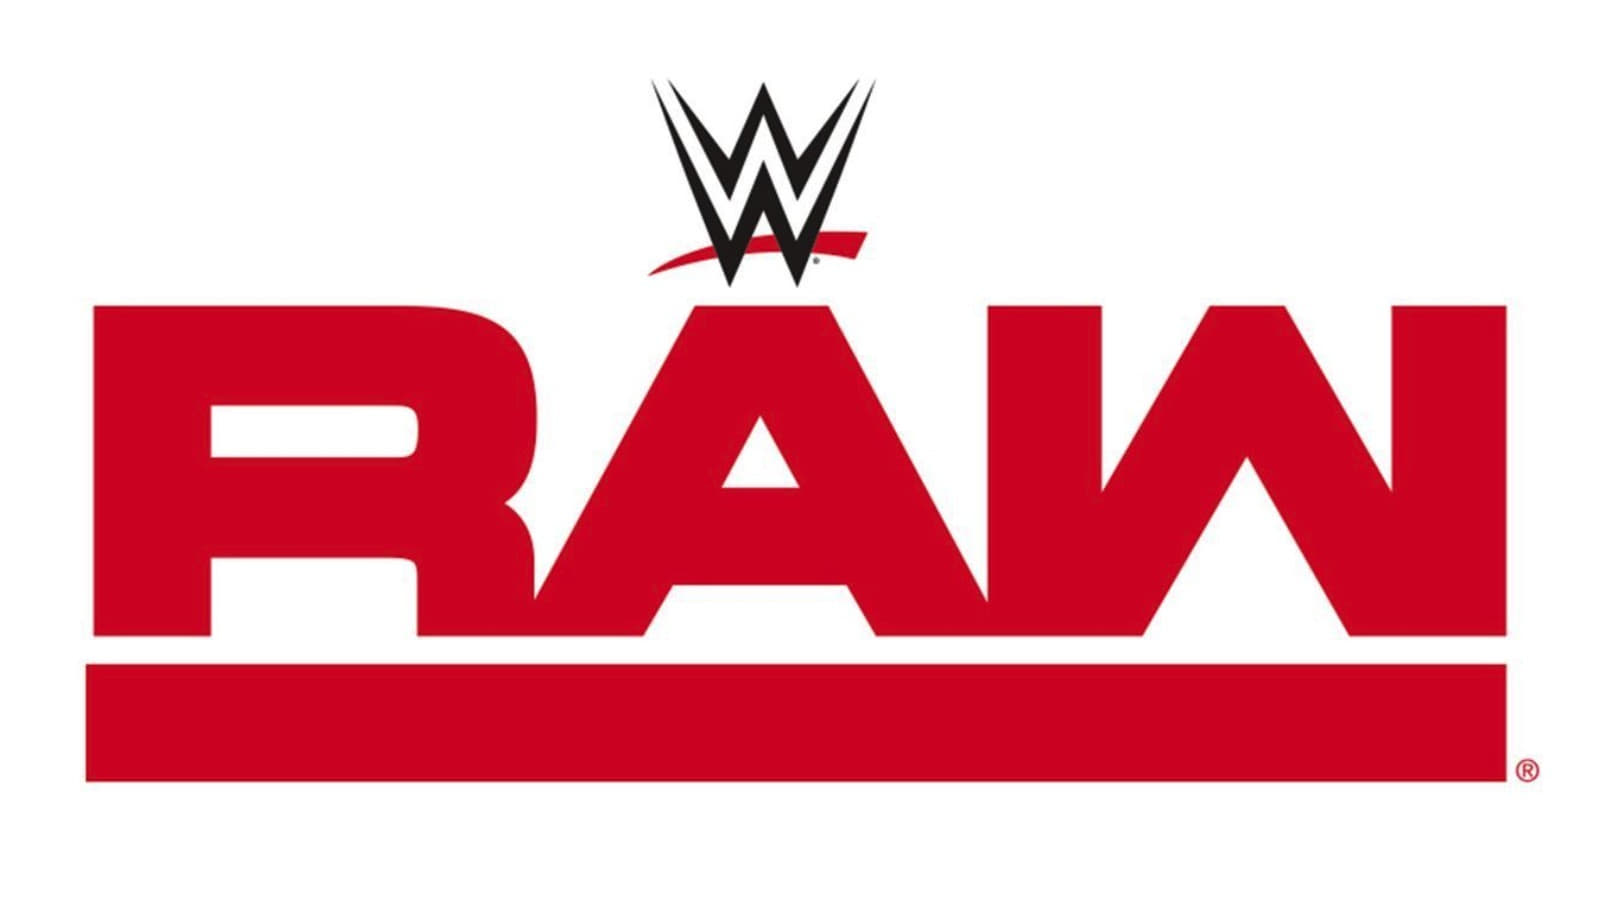 WWE Raw - Season 22 Episode 21 : May 26, 2014 (Knoxville, TN)